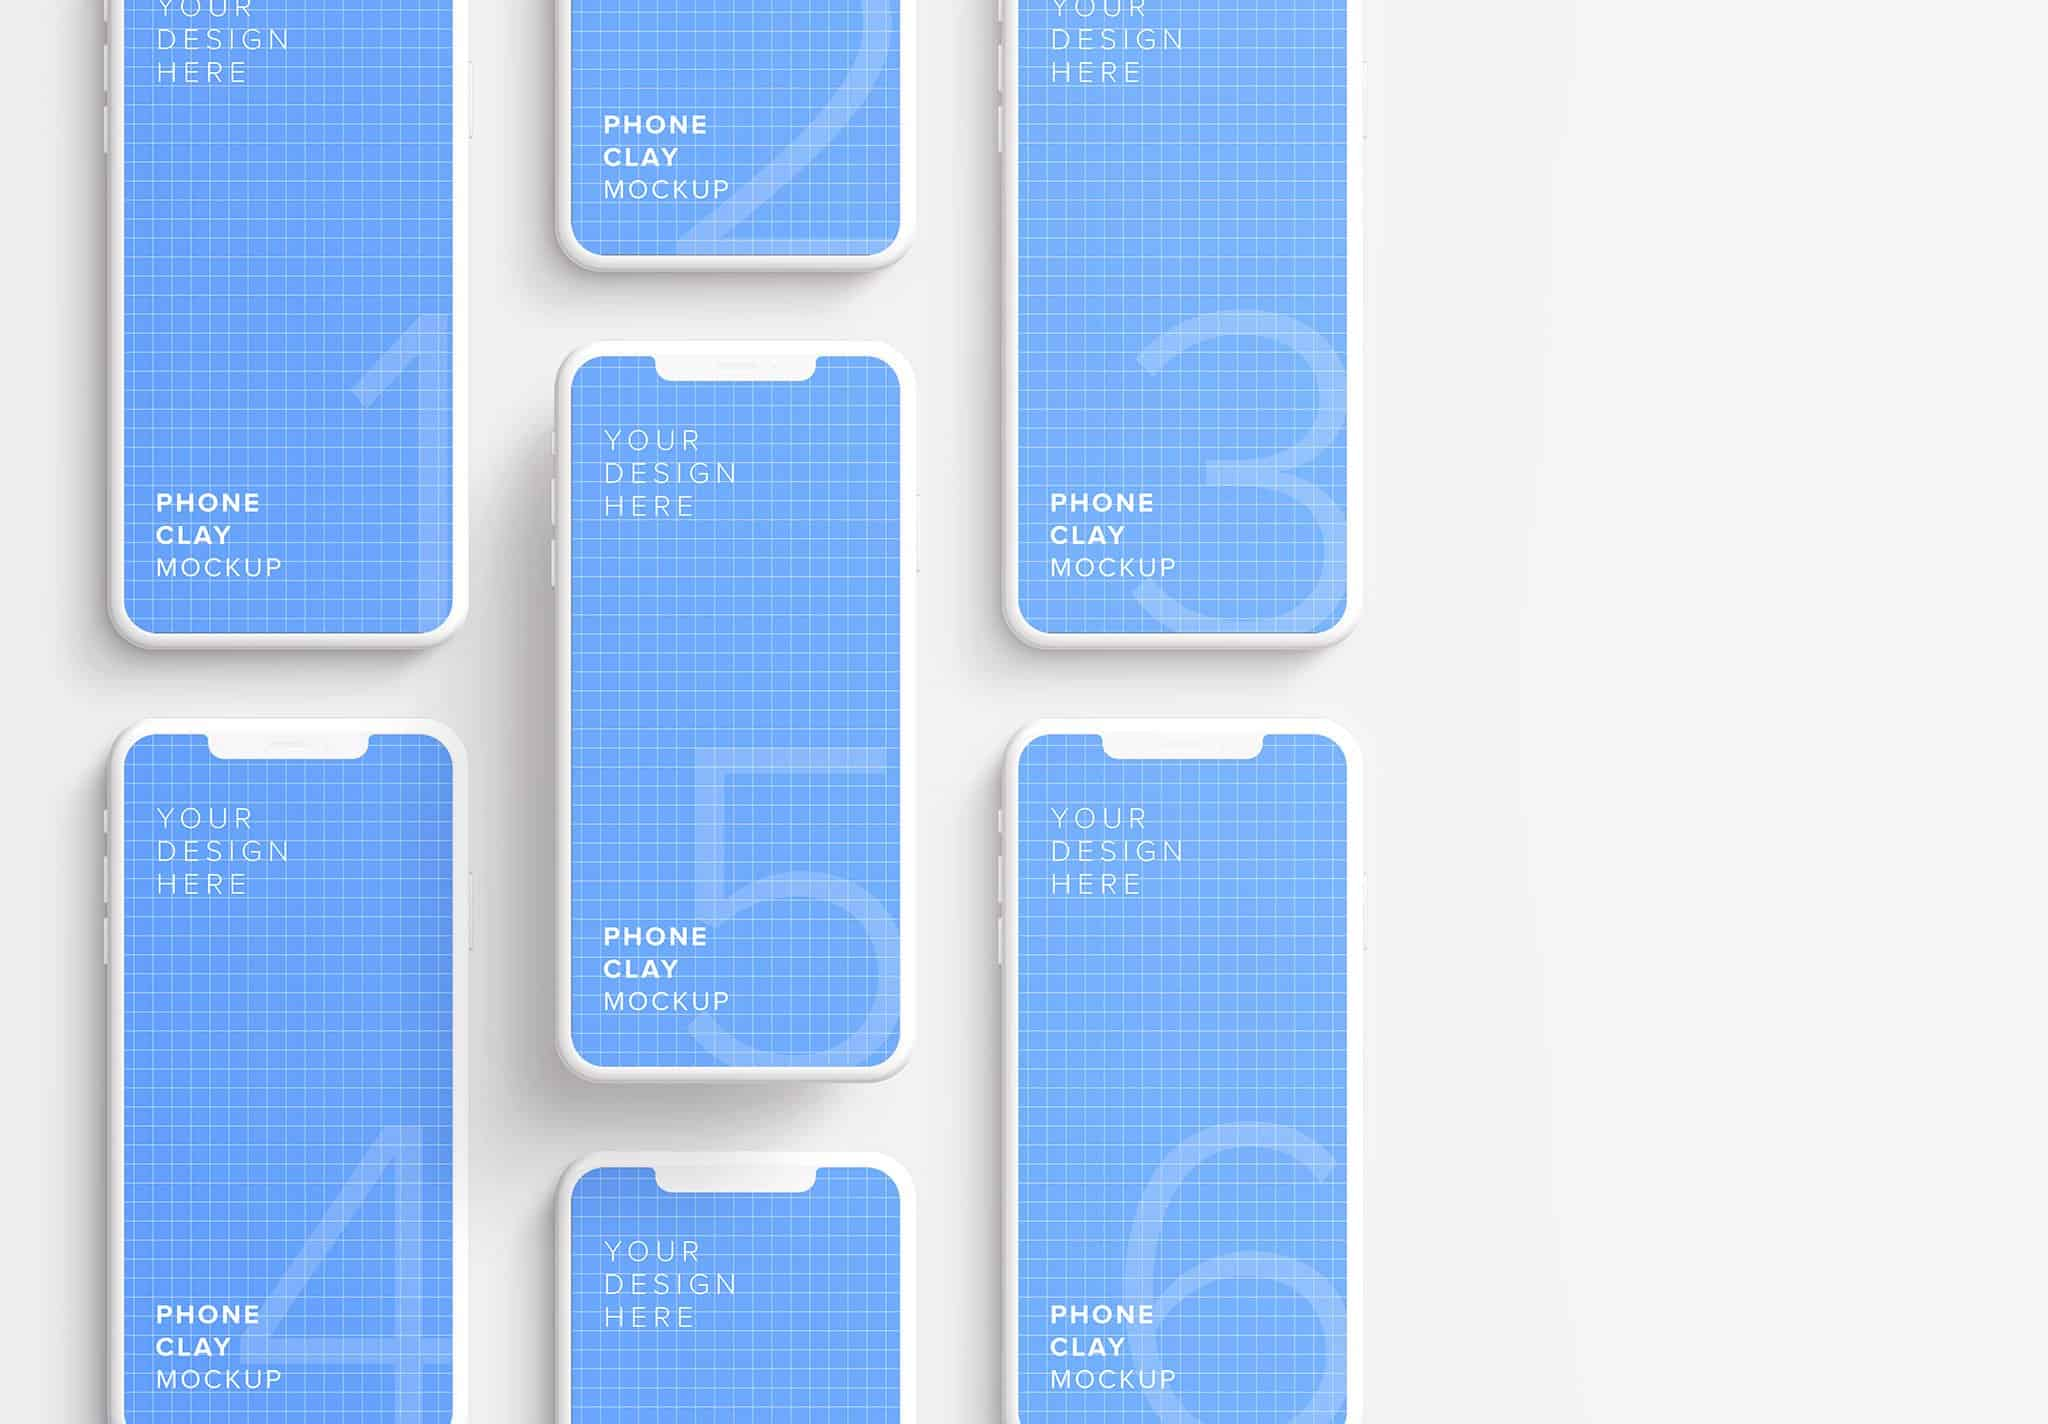 iphone smartphone clay layout 4 mockup thumbnail